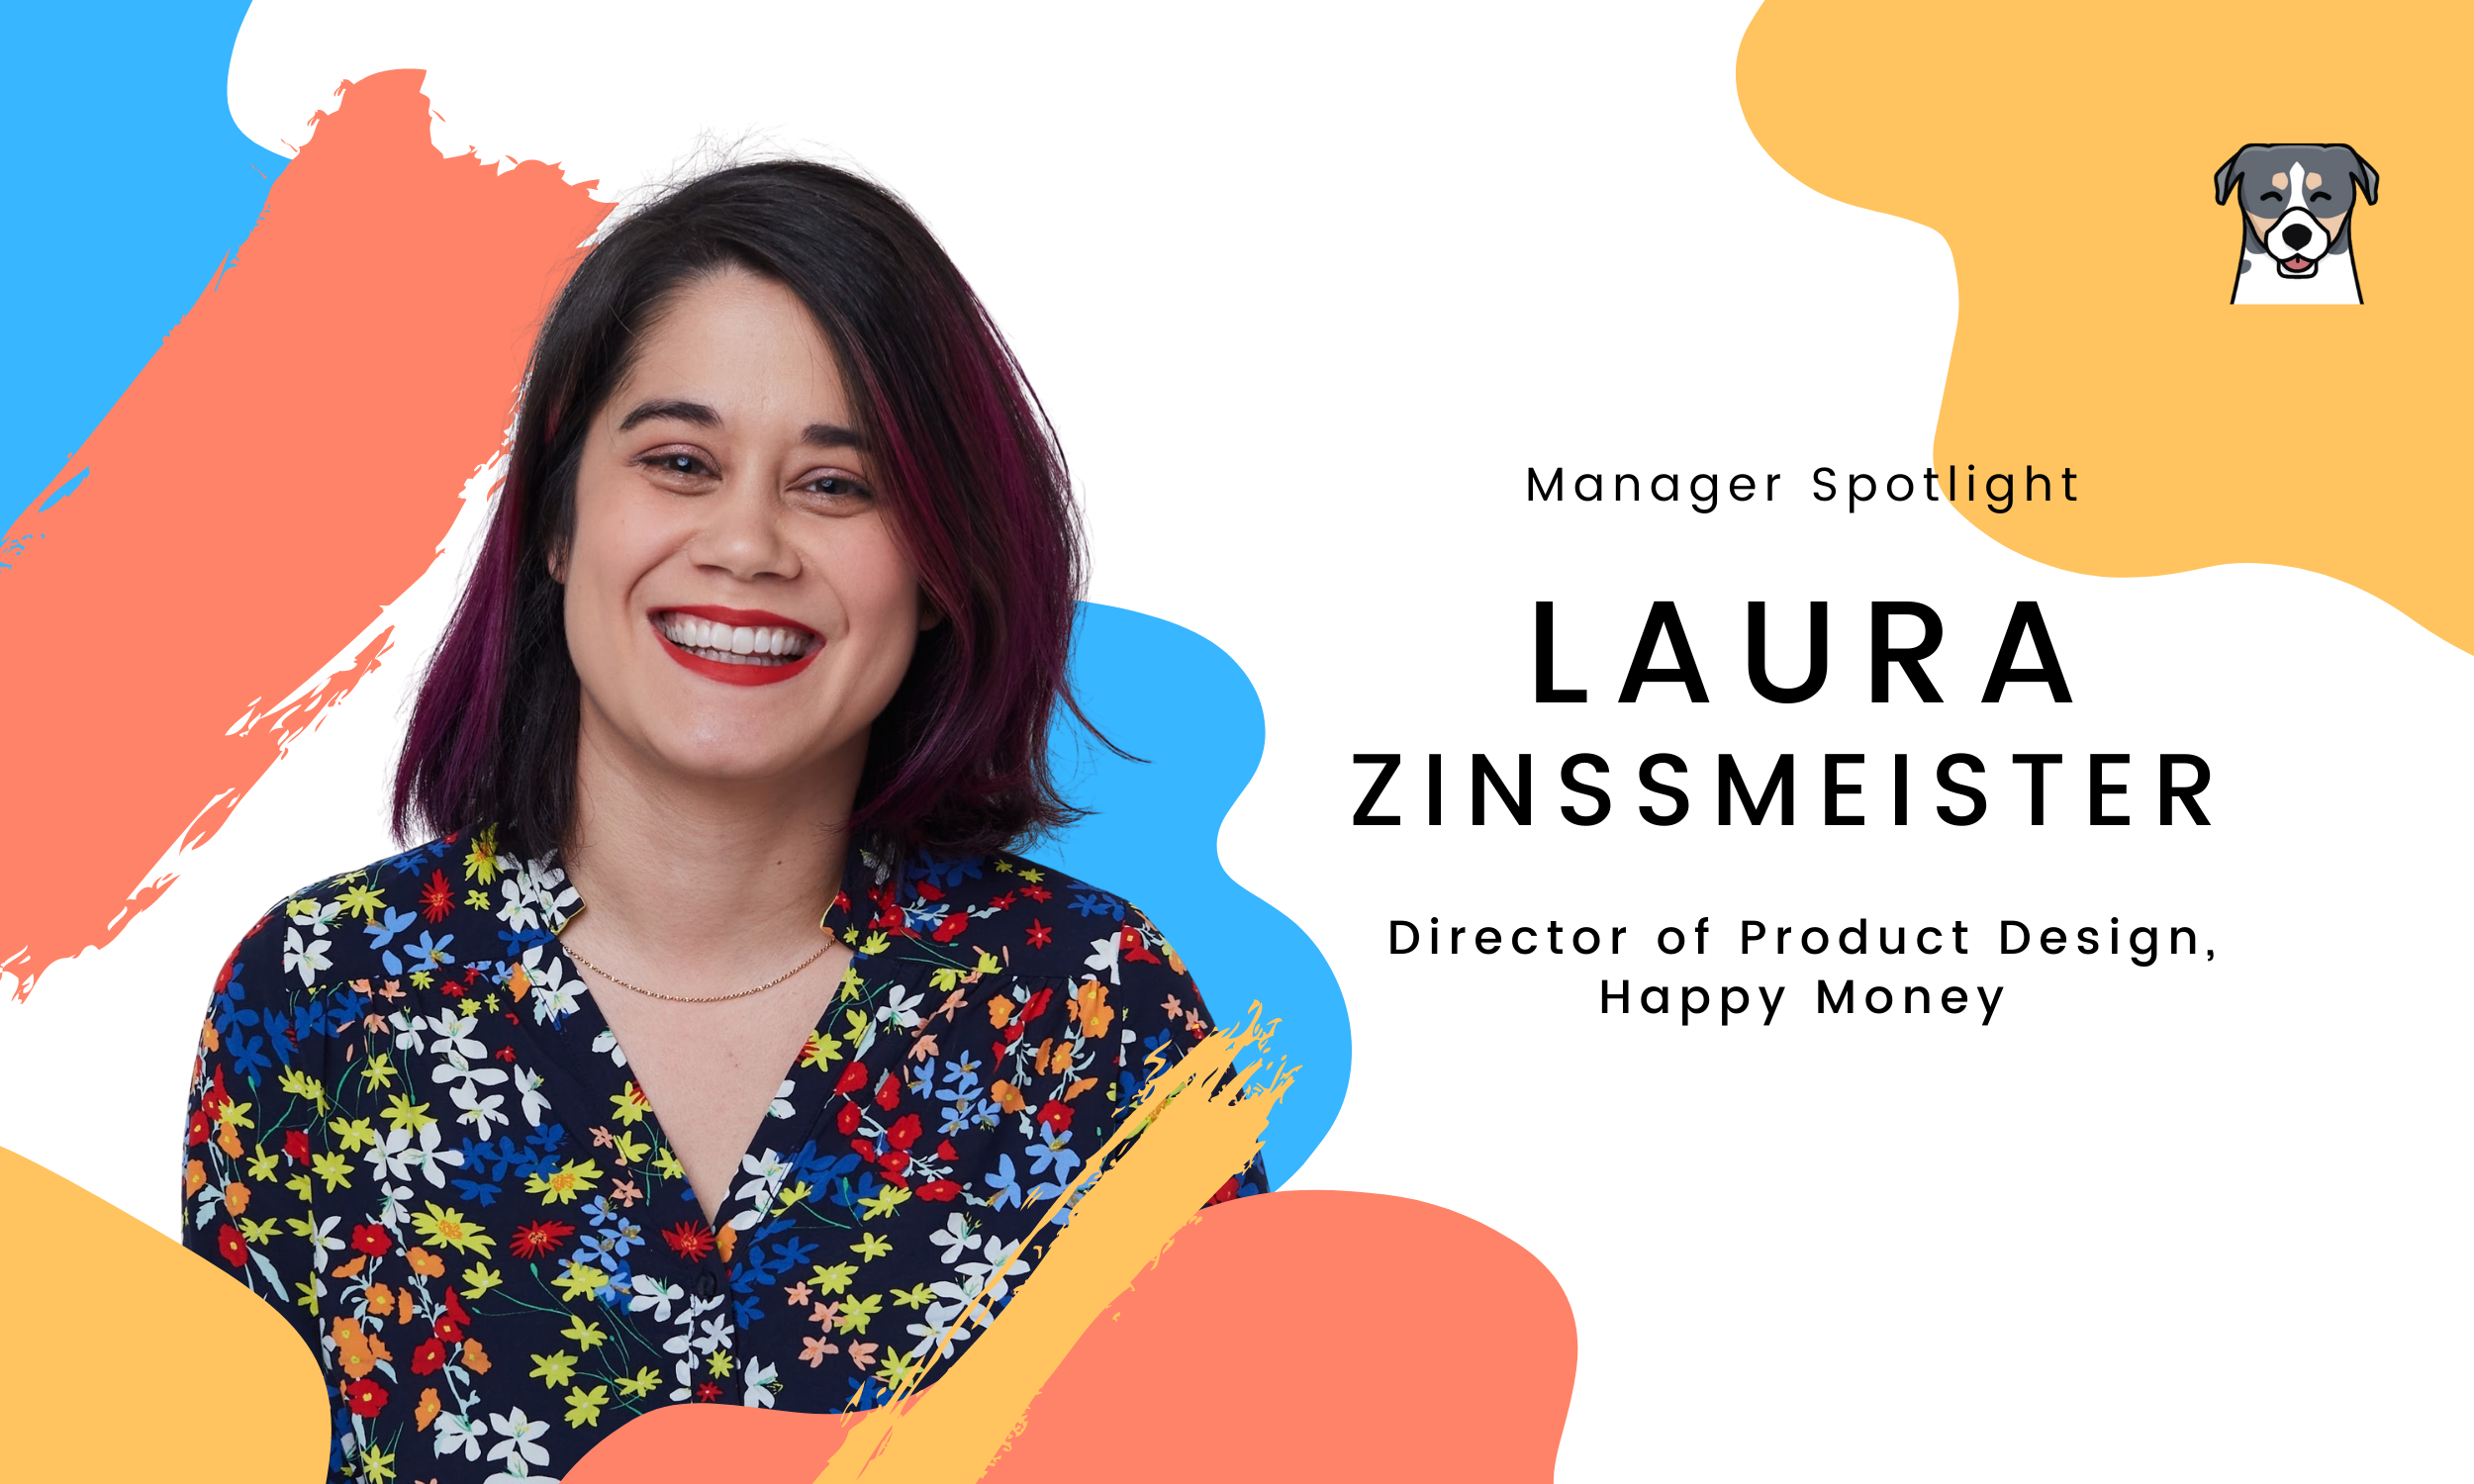 This week we spoke to Laura, Director of Product Design at Happy Money. She shares her best tips for remote management, leadership lessons from anti-racism lectures, and the importance of balance.